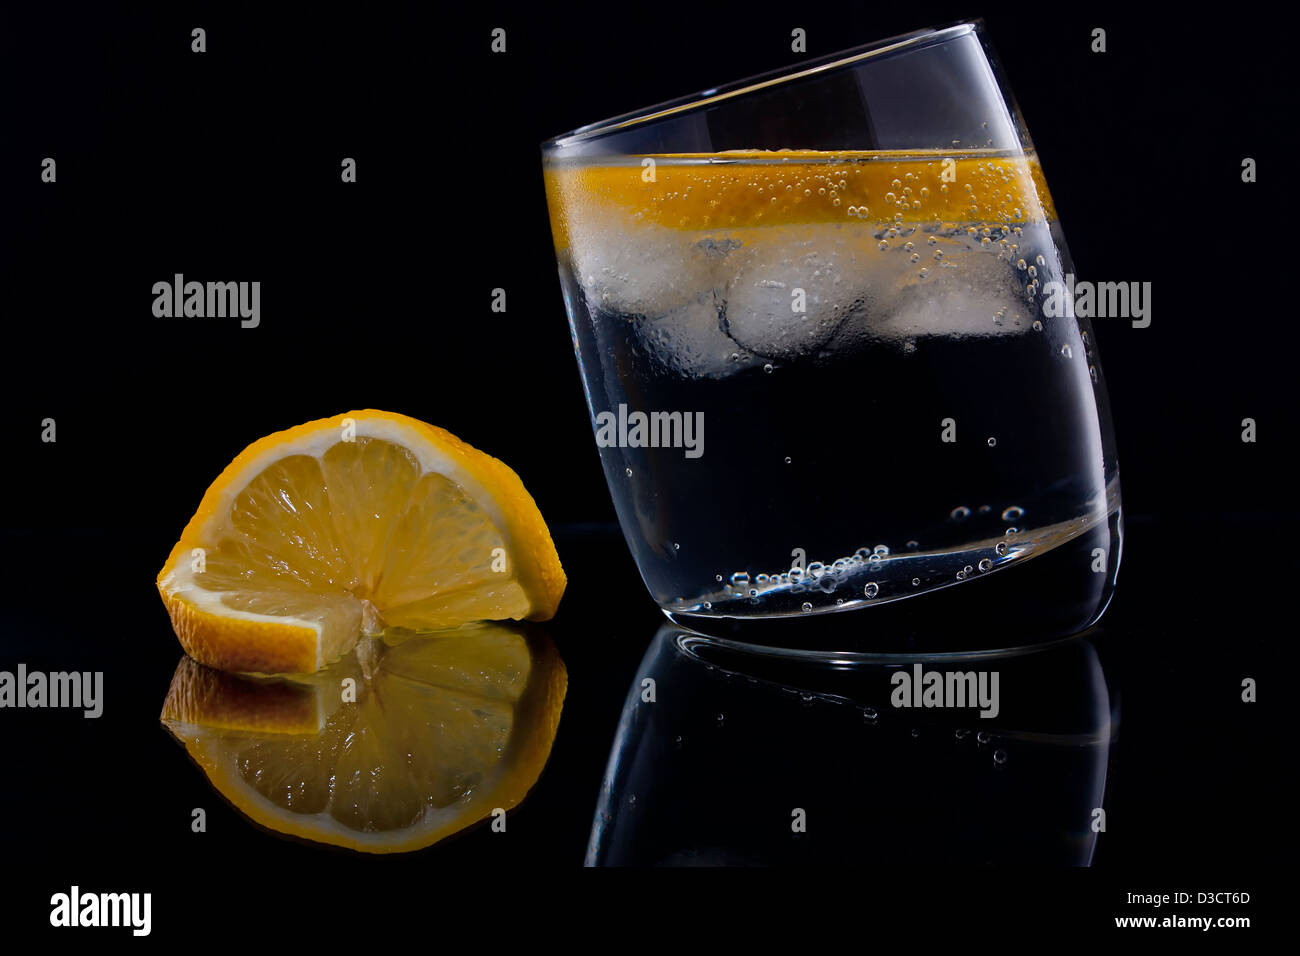 Lemon immagini lemon fotos stock alamy for Limone nero